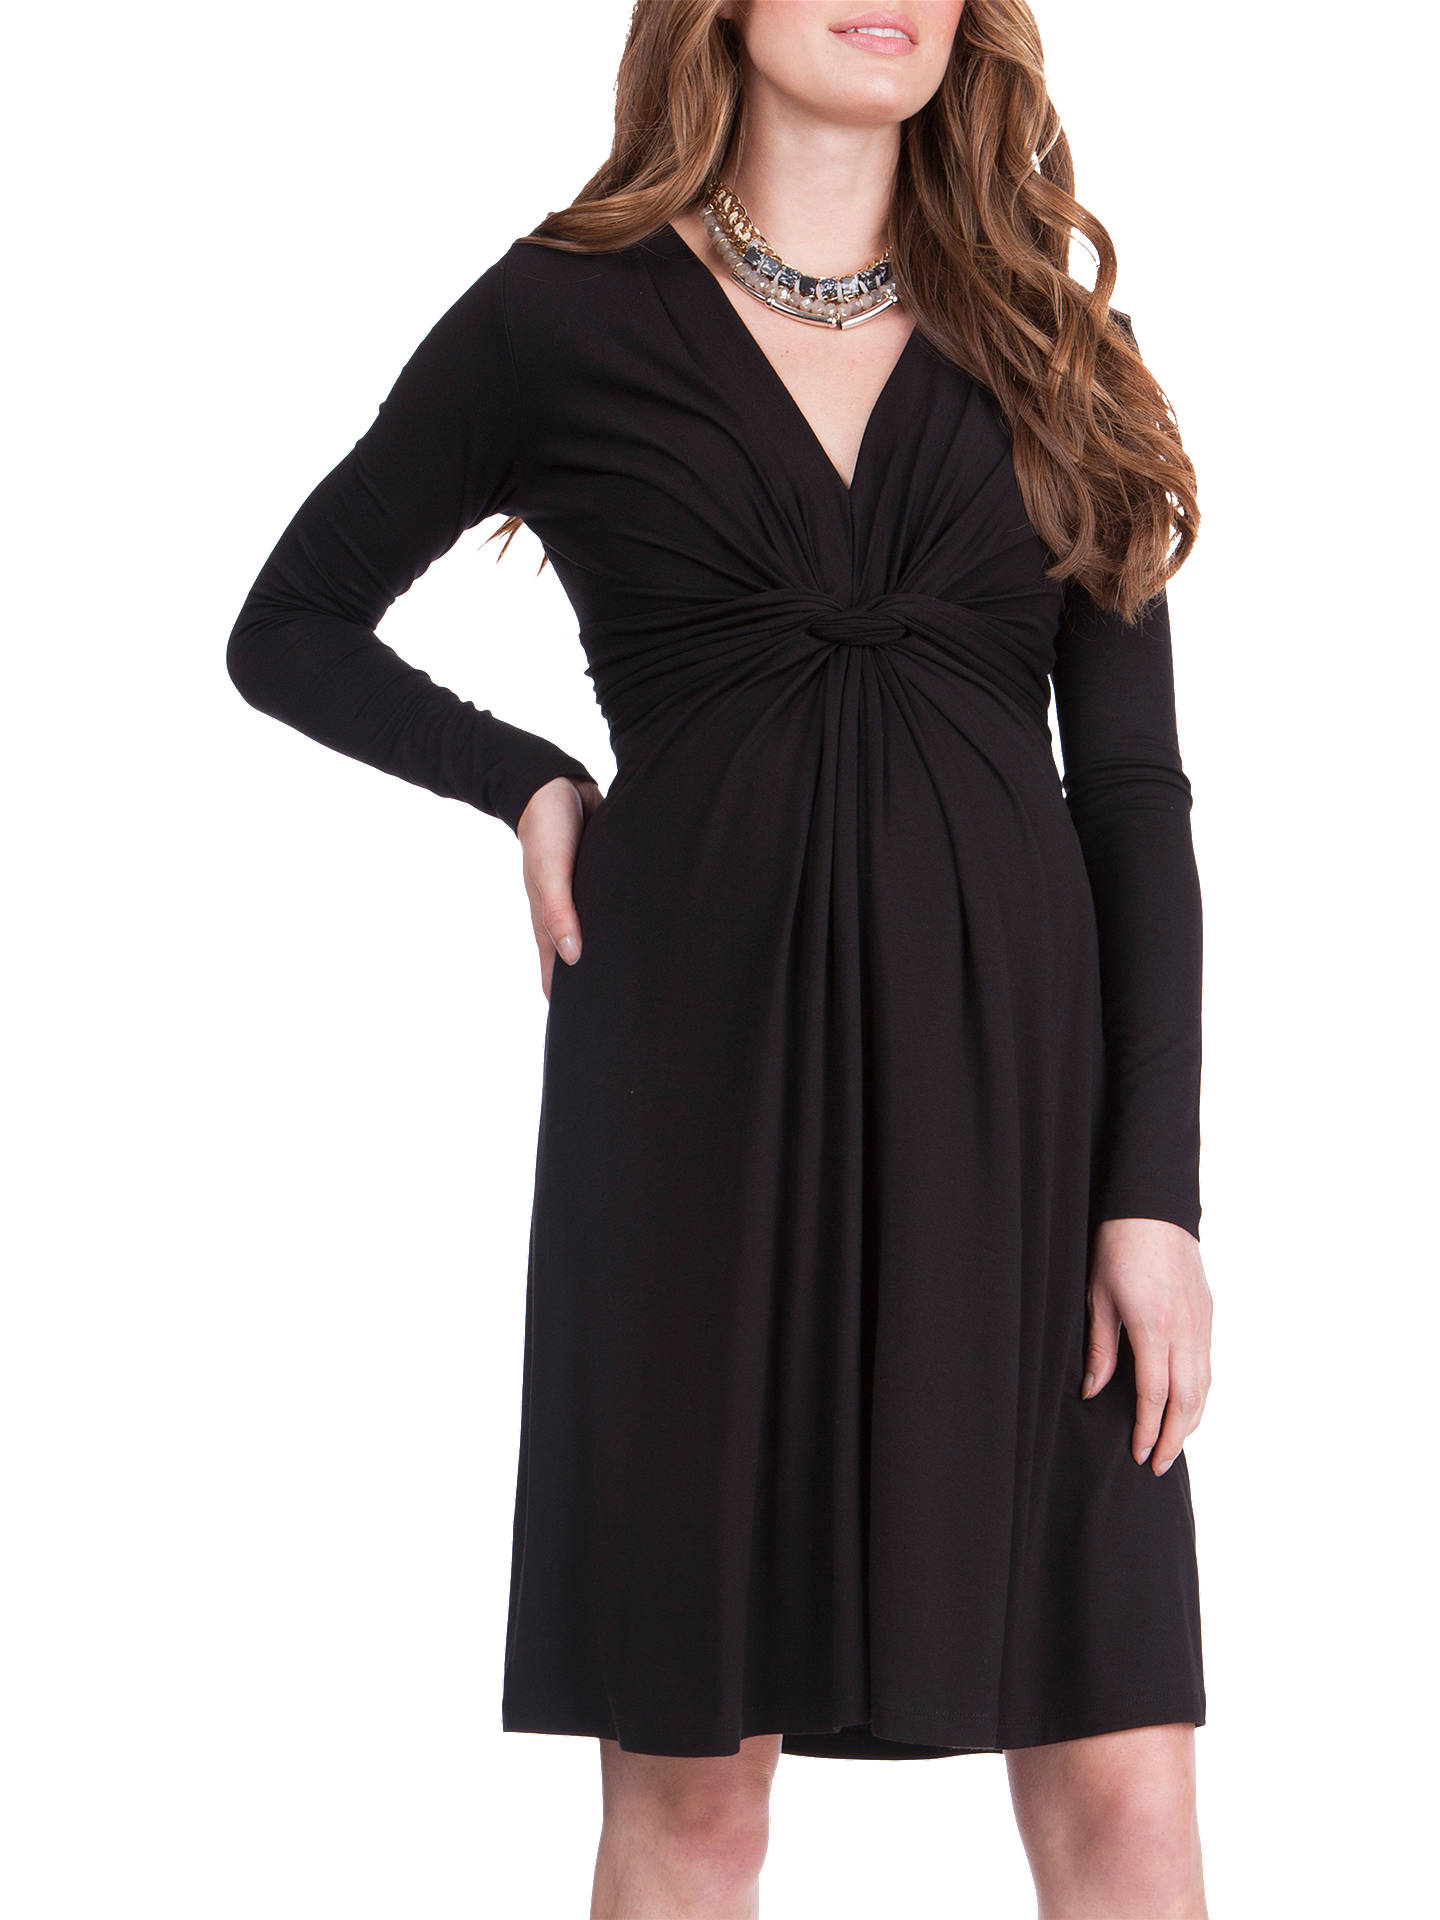 55fd0b1db9cd7 ... Buy Séraphine Jolene Knot Front Maternity Dress, Black, 8 Online at  johnlewis.com ...